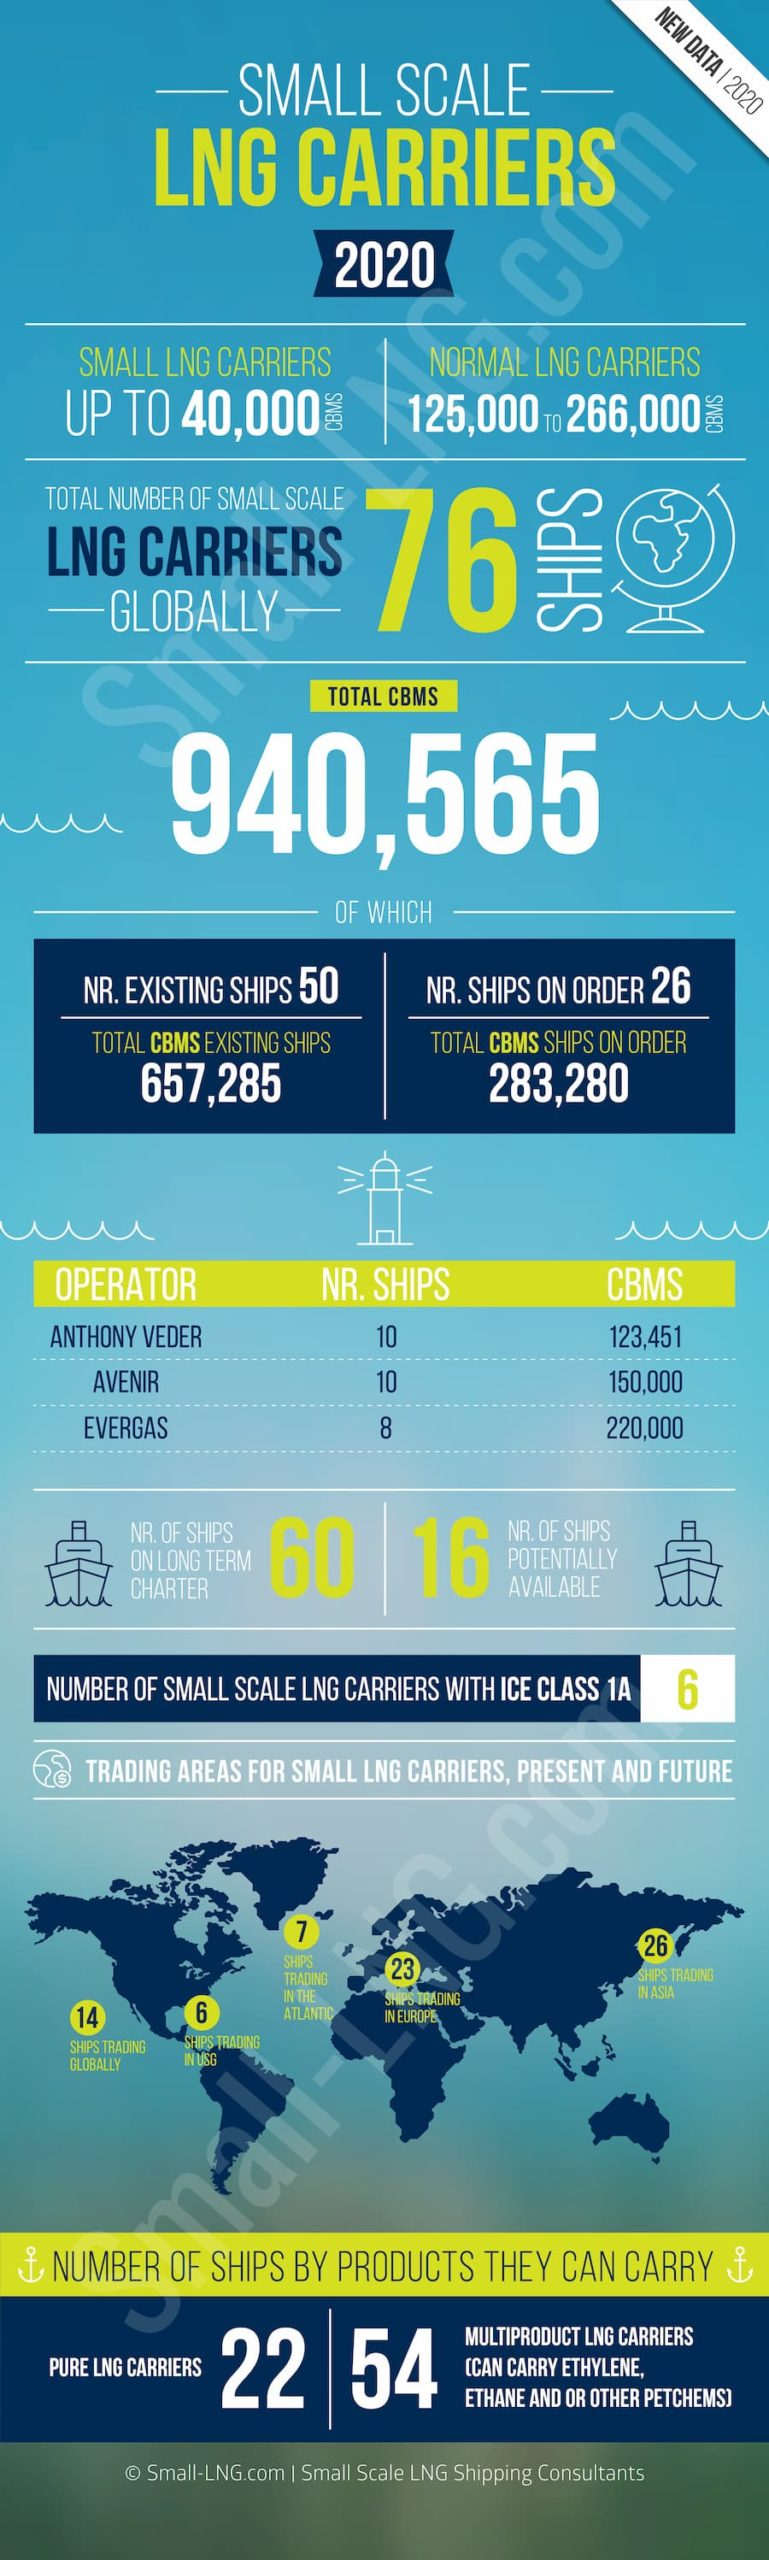 Infographic: Small LNG Carriers 2020